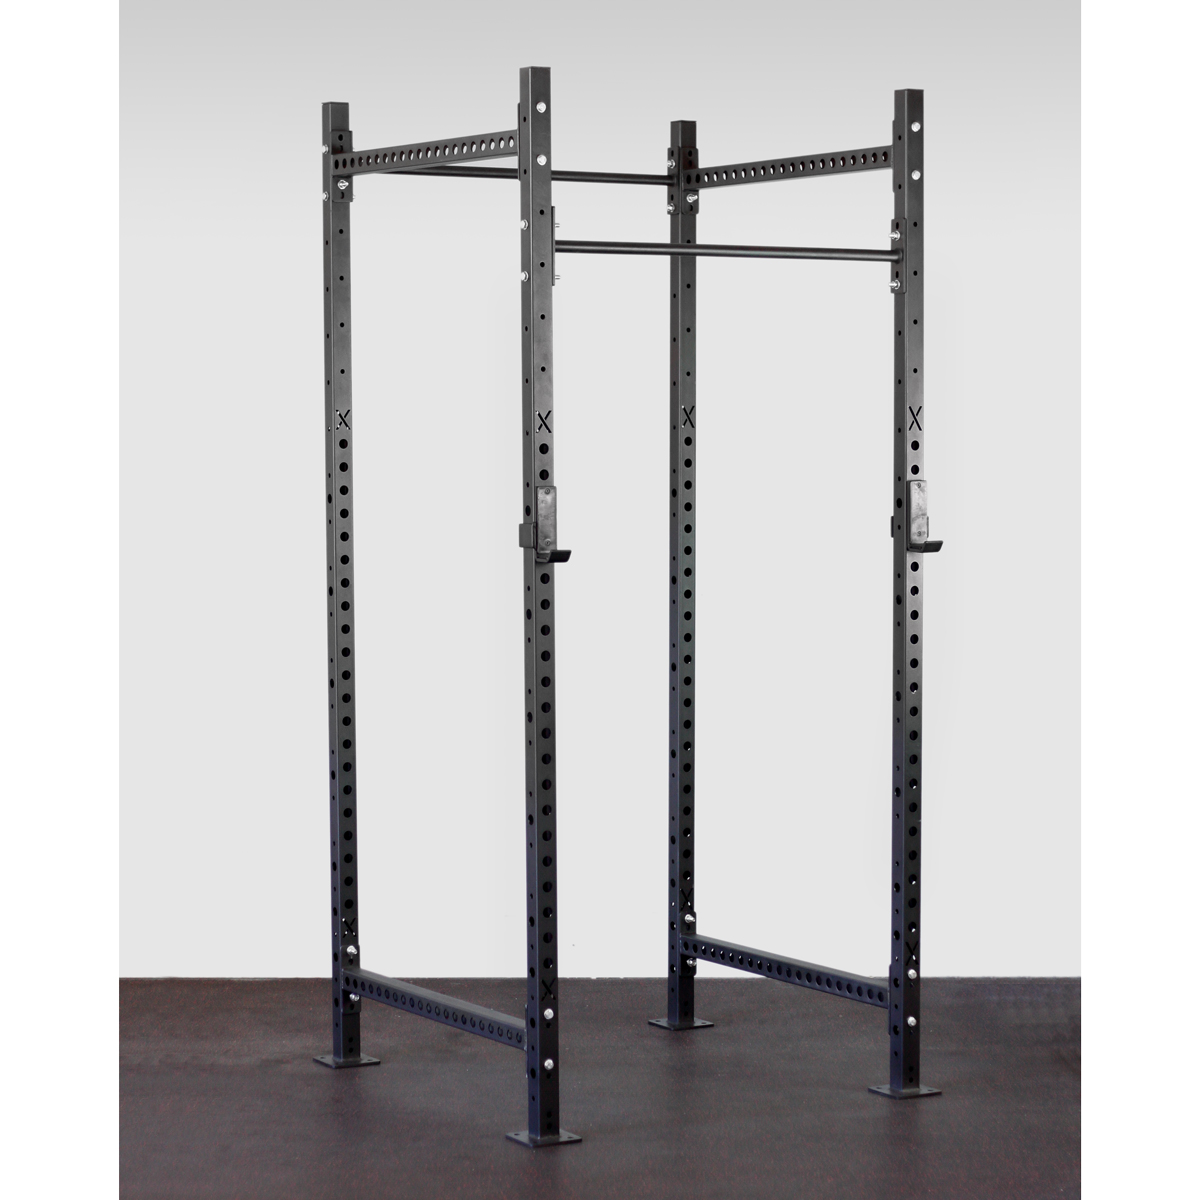 4x4 Elite Power Rack